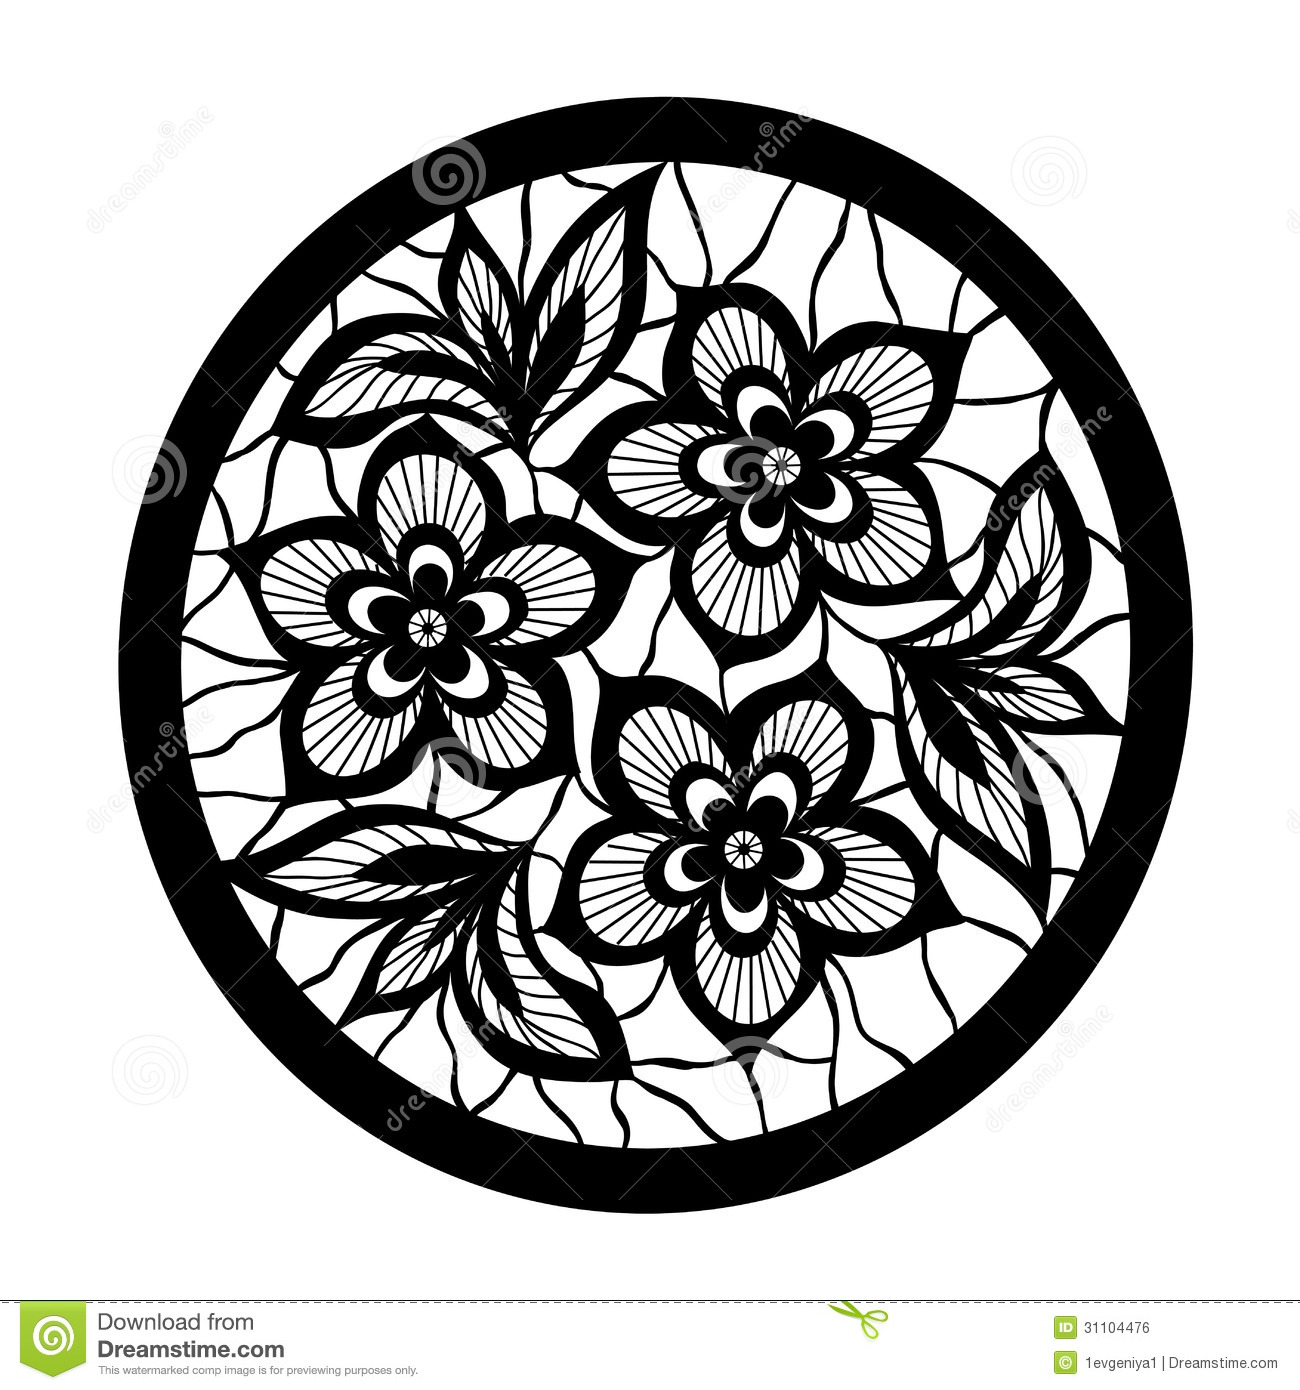 Set Of Black Flower Design Elements Royalty Free Stock: Floral Design Element. Flowers With Imitation Lace And